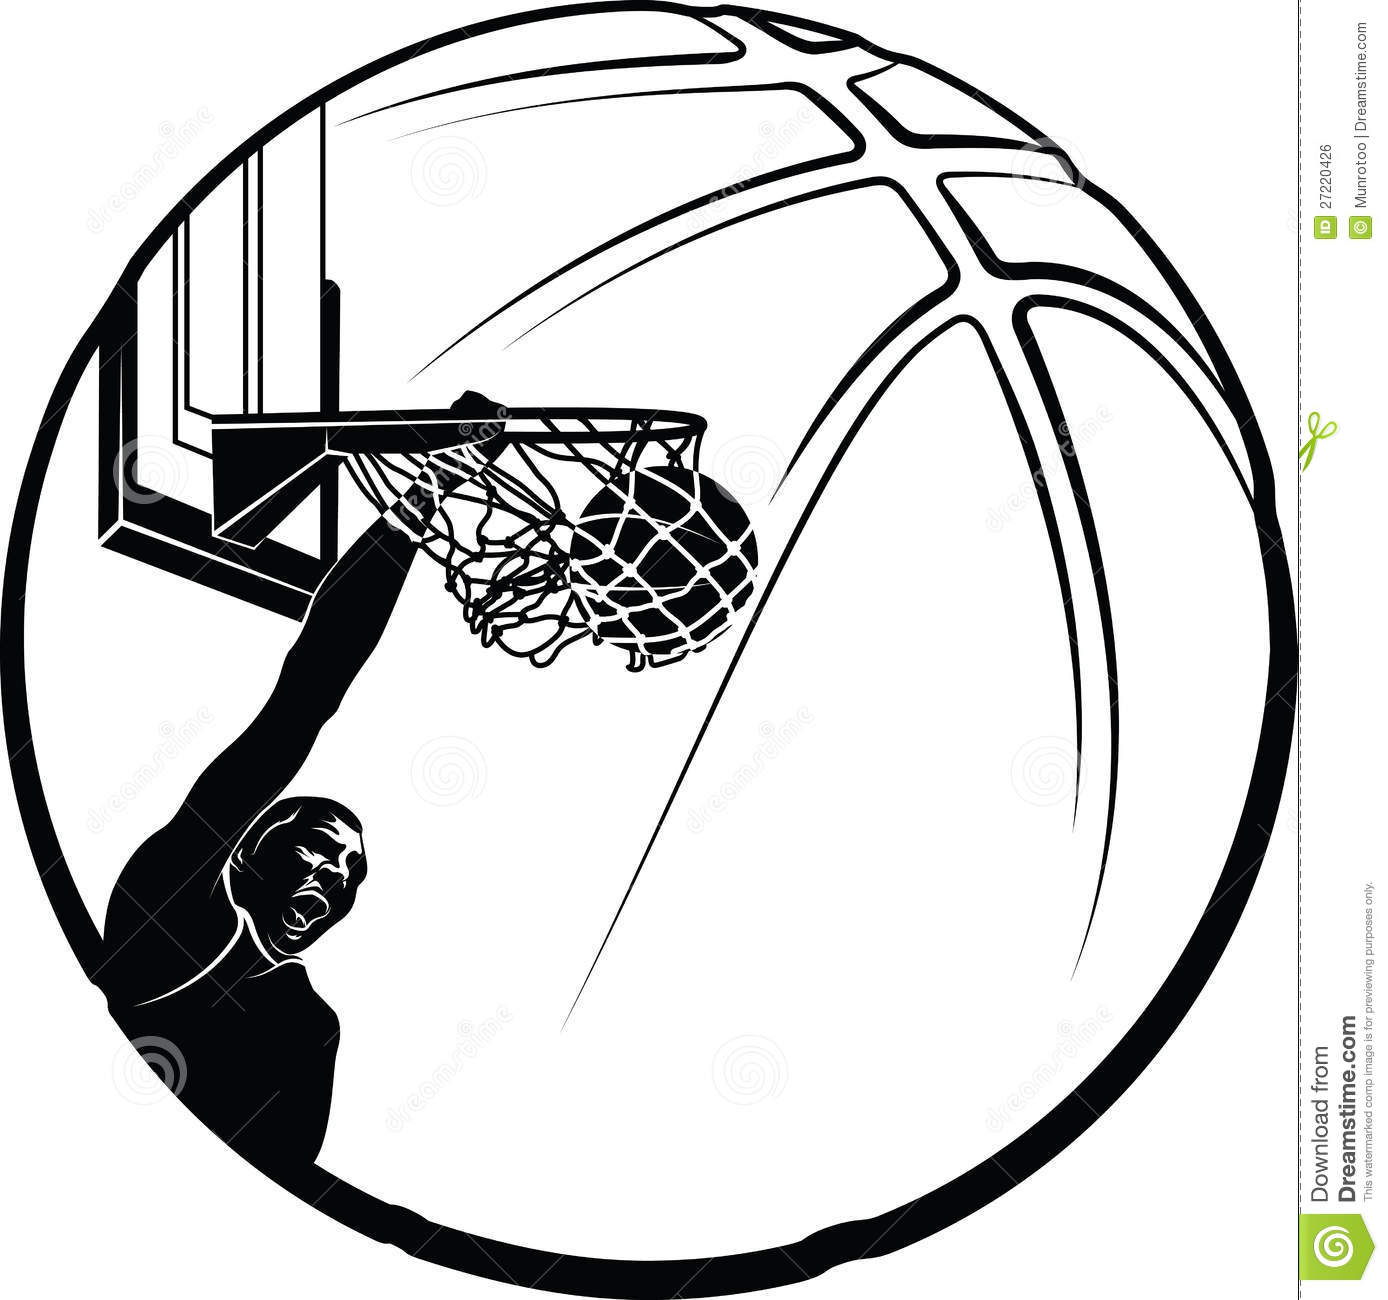 Basketball Player Clipart Black And White